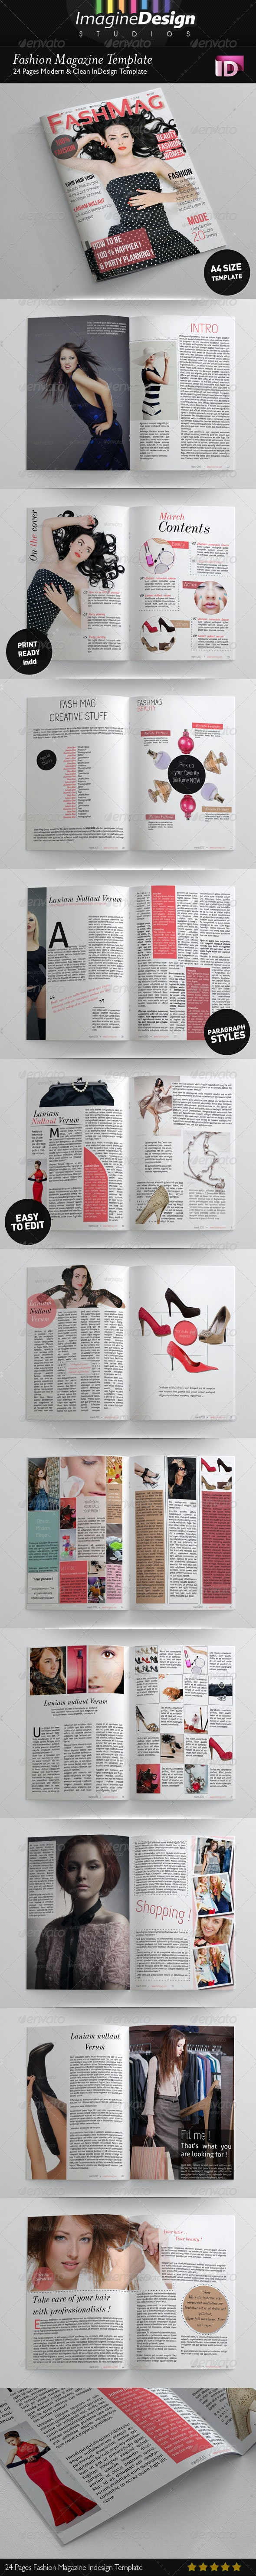 24 Pages Fashion Magazine Template - Magazines Print Templates